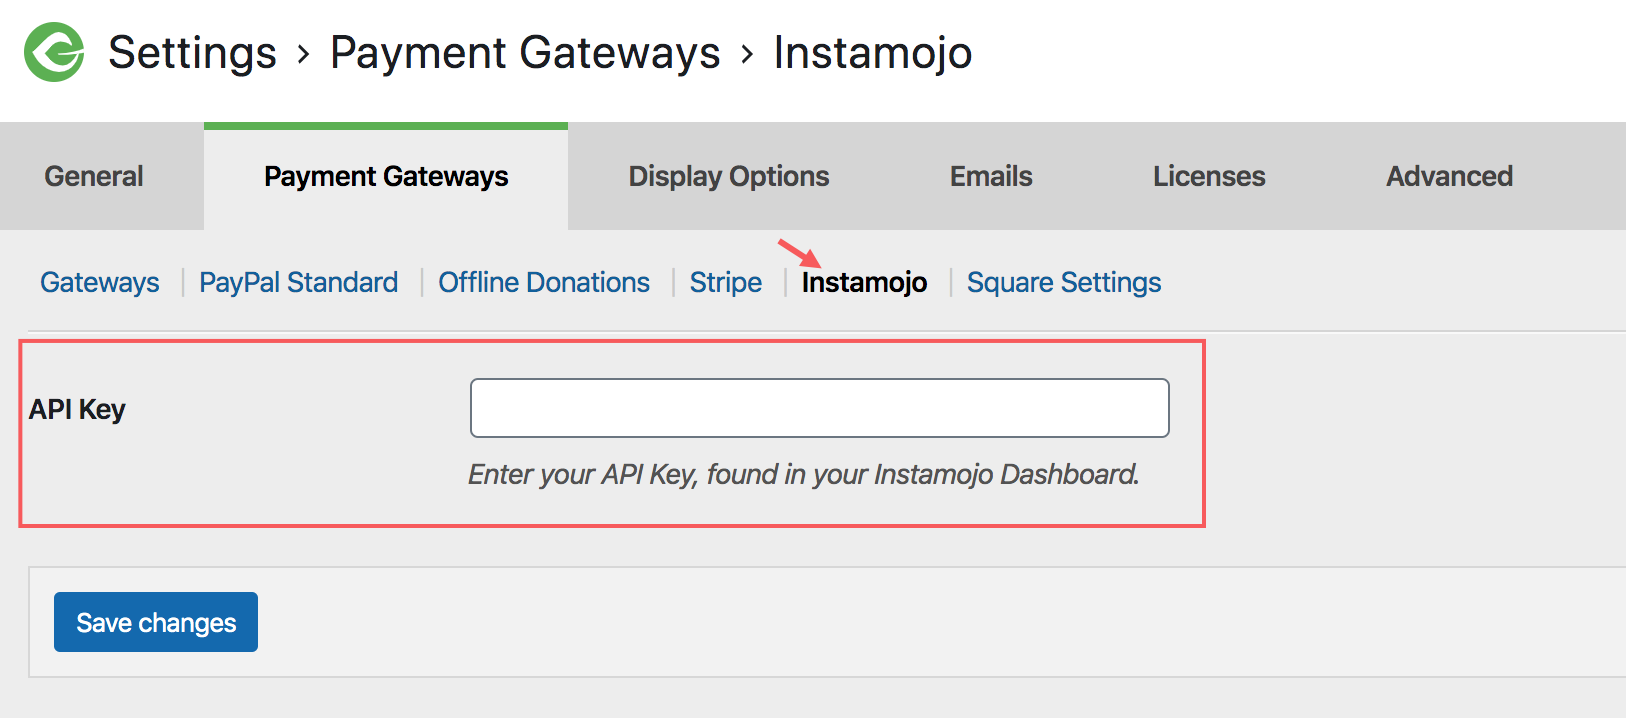 screenshot highlighting the new Instamojo section on the Payment Gateways tab.